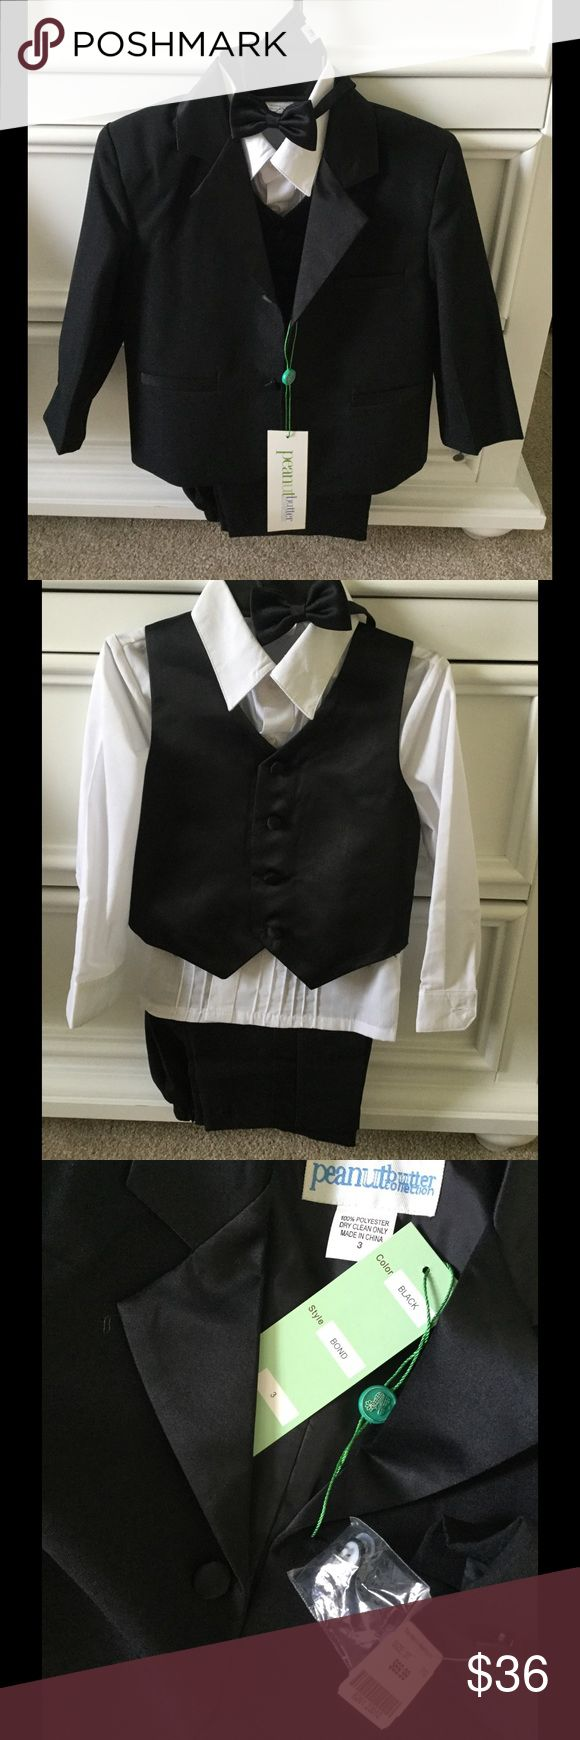 Toddler tuxedo size 3 Brand new tuxedo, size 3, purchased from the men's warehouse. Includes pull on elastic back pants, white button down shirt, black vest, black coat, bow tie. Just in time for wedding season! Matching Sets